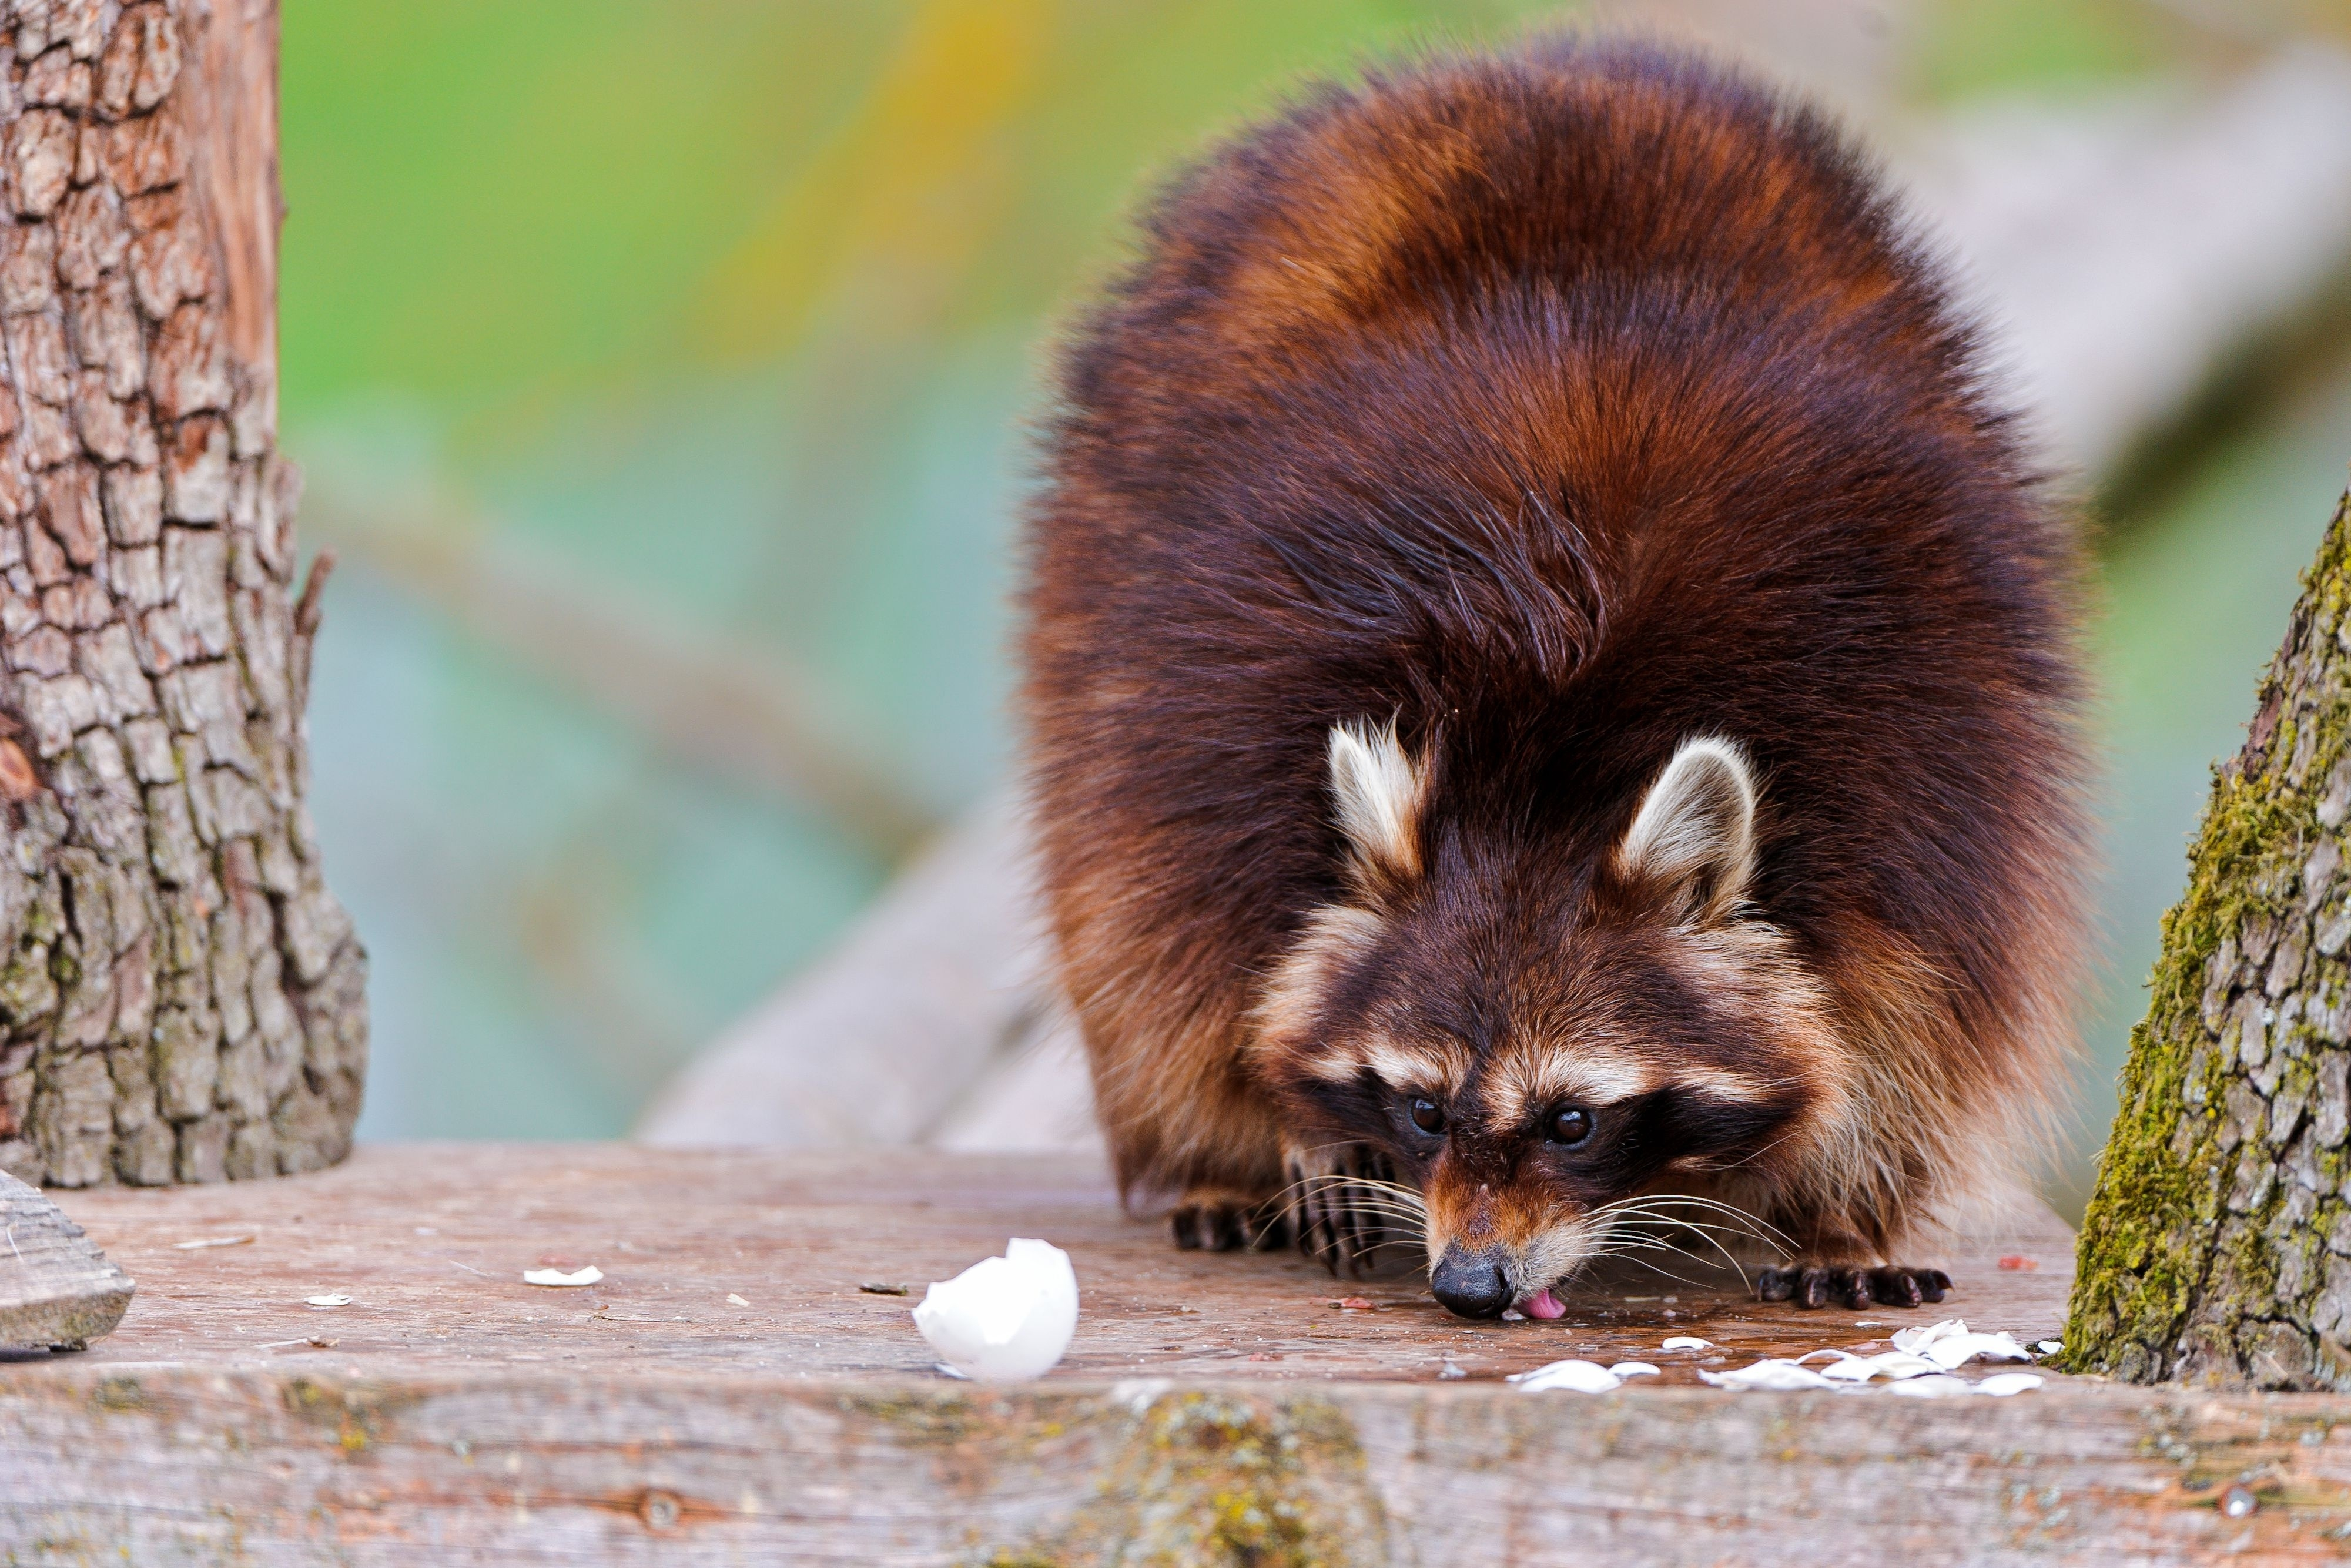 111344 Screensavers and Wallpapers Raccoon for phone. Download Animals, Food, Fluffy, Climb, Raccoon pictures for free